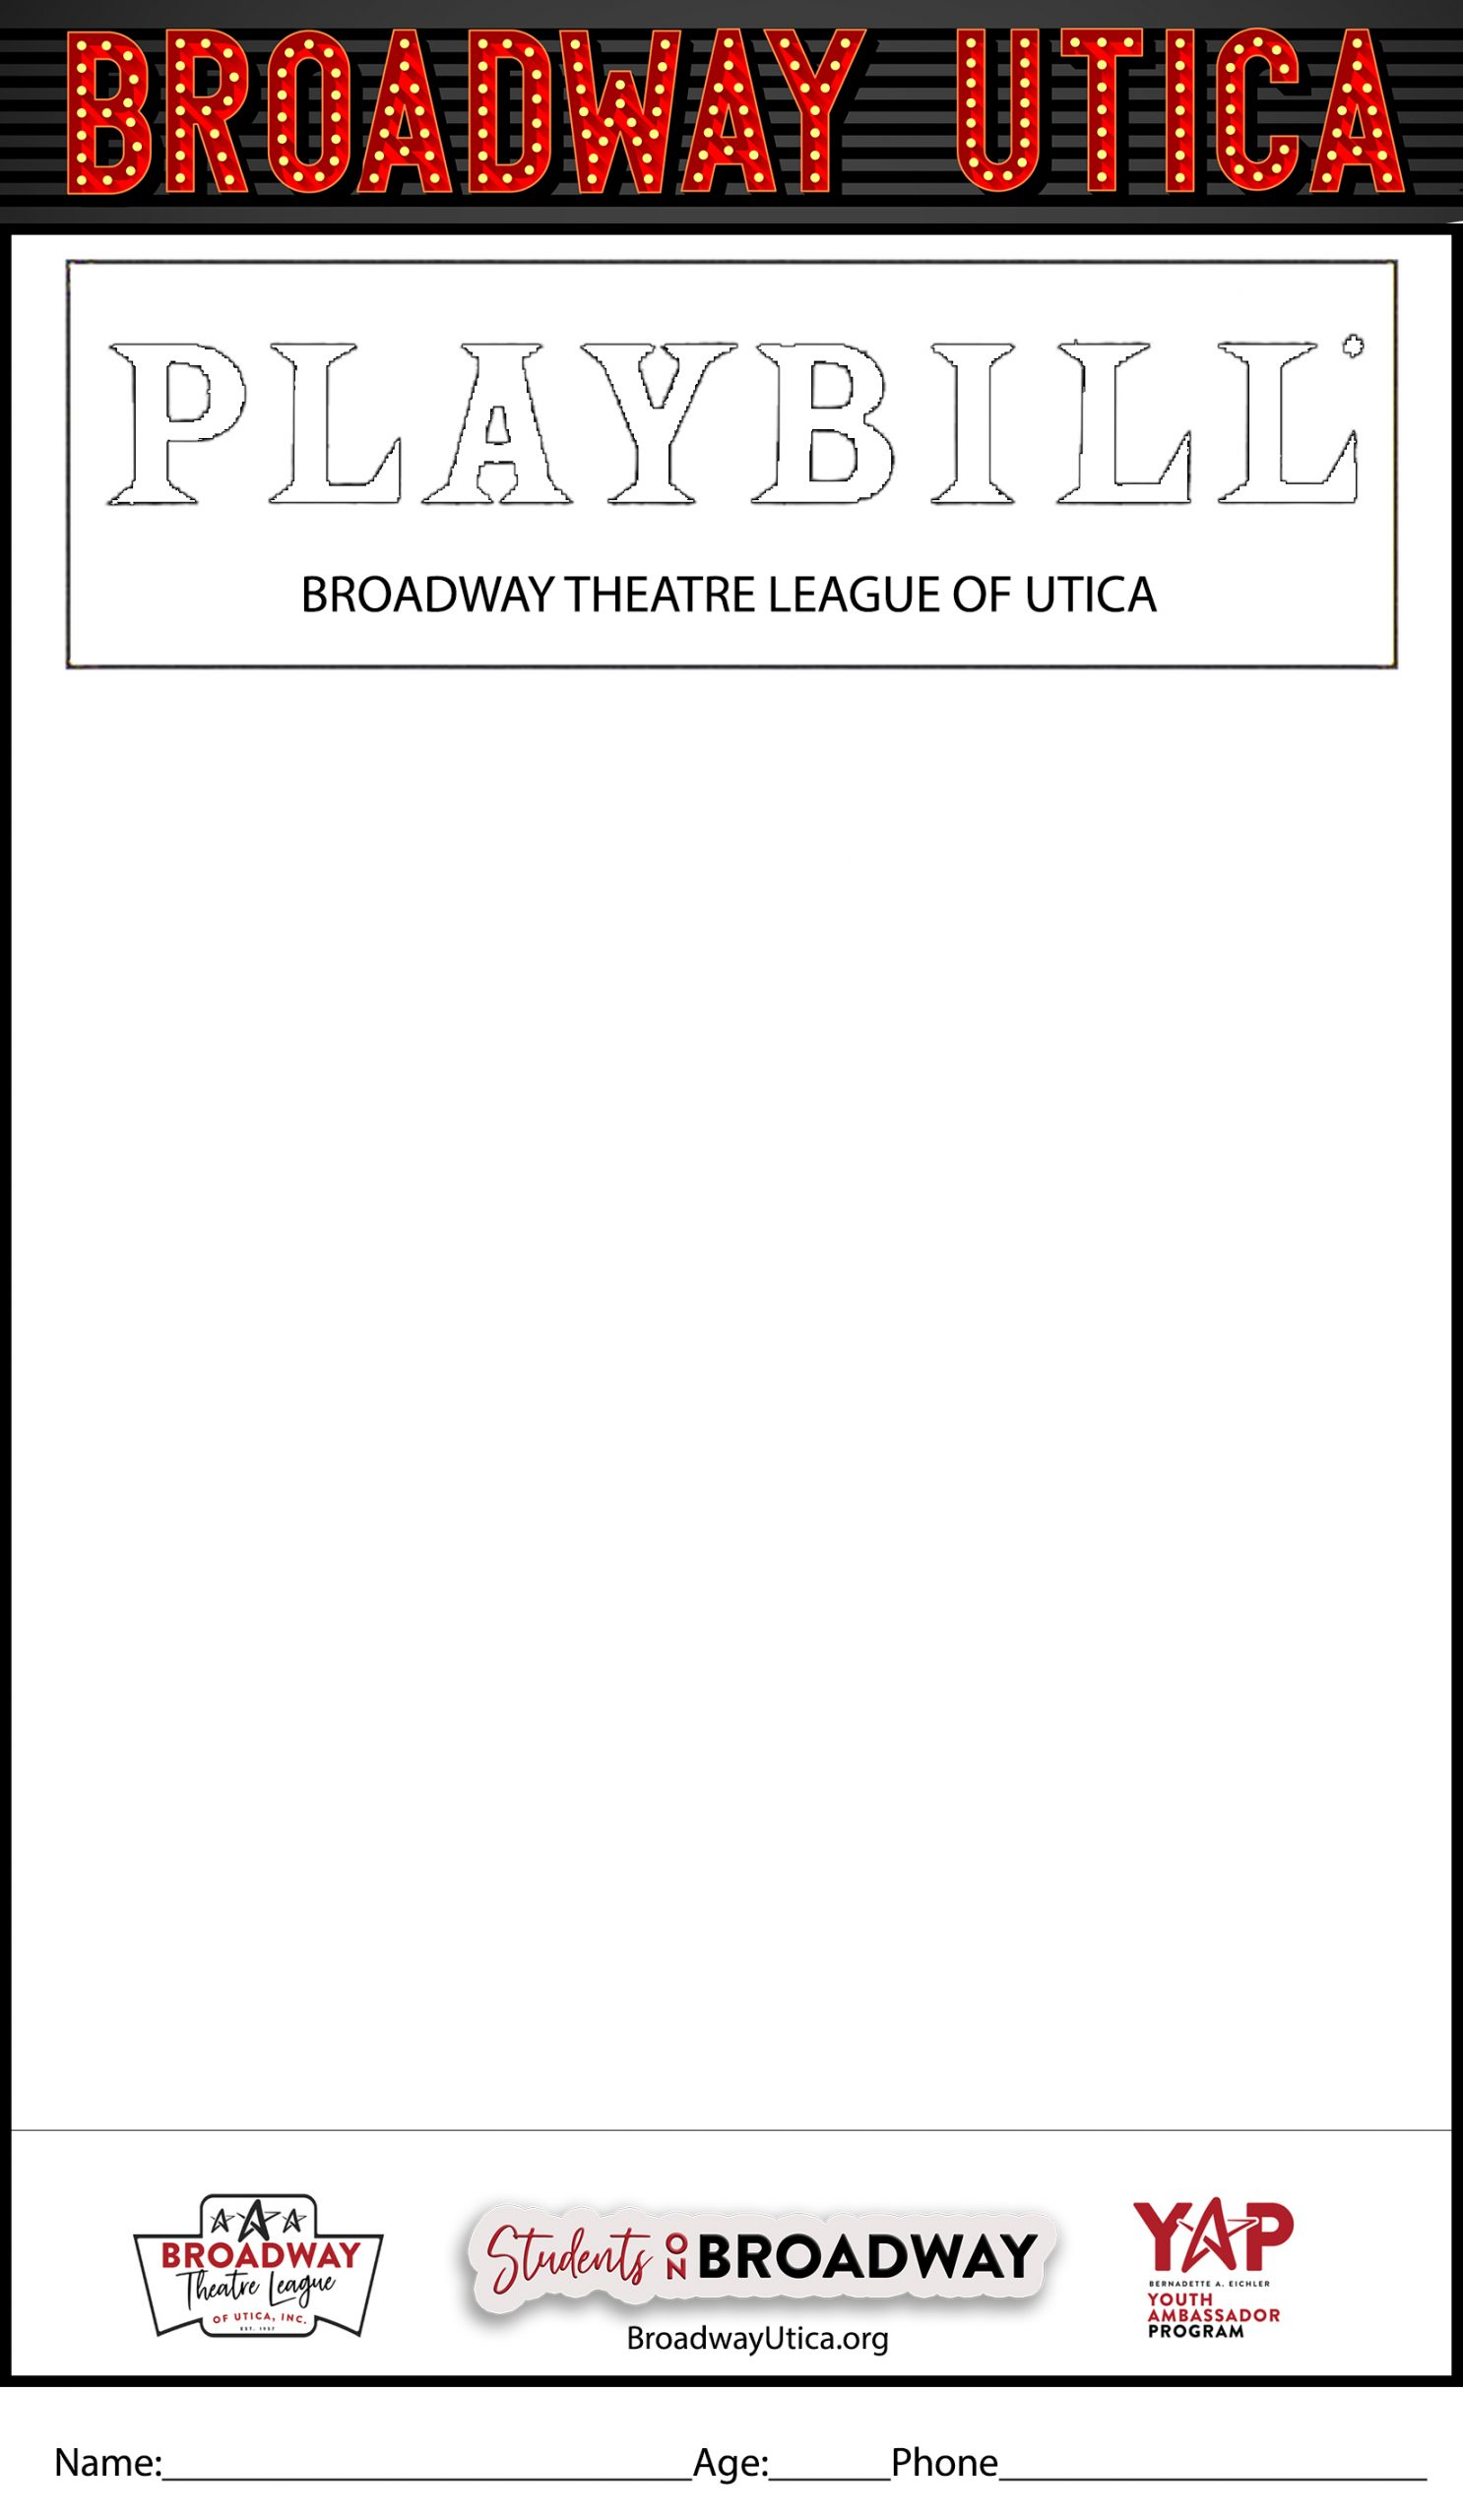 THE PLAYBILL COVER CONTEST